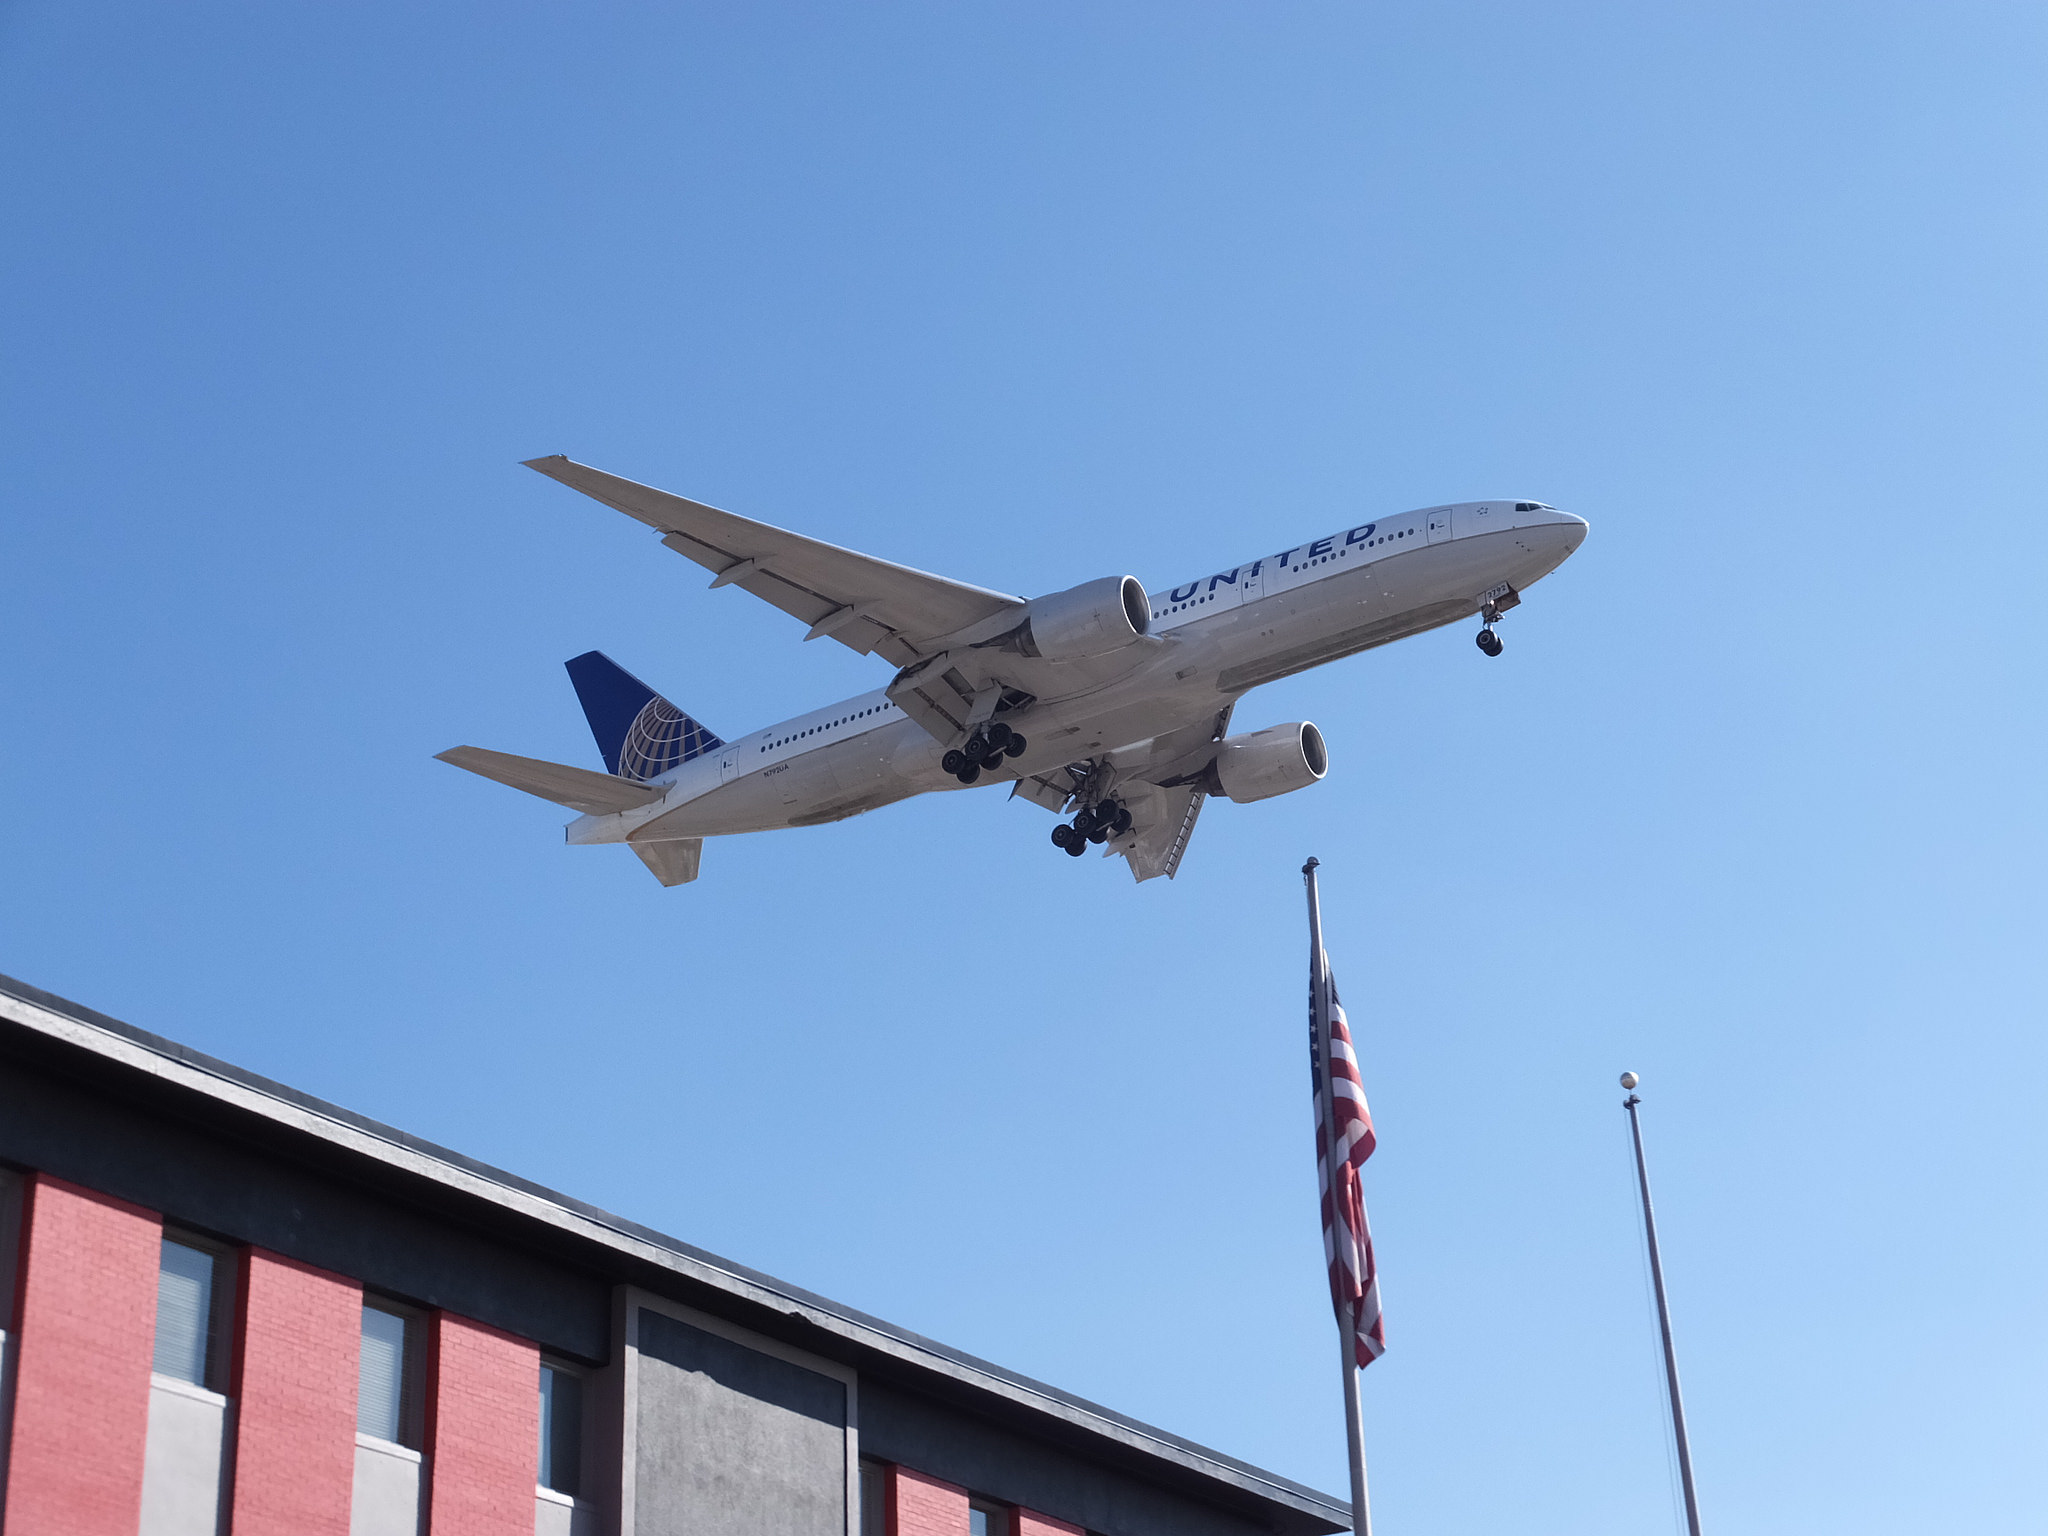 A United Airlines 777 at Chicago O'Hare. Photo: Flickr user Friscocali.